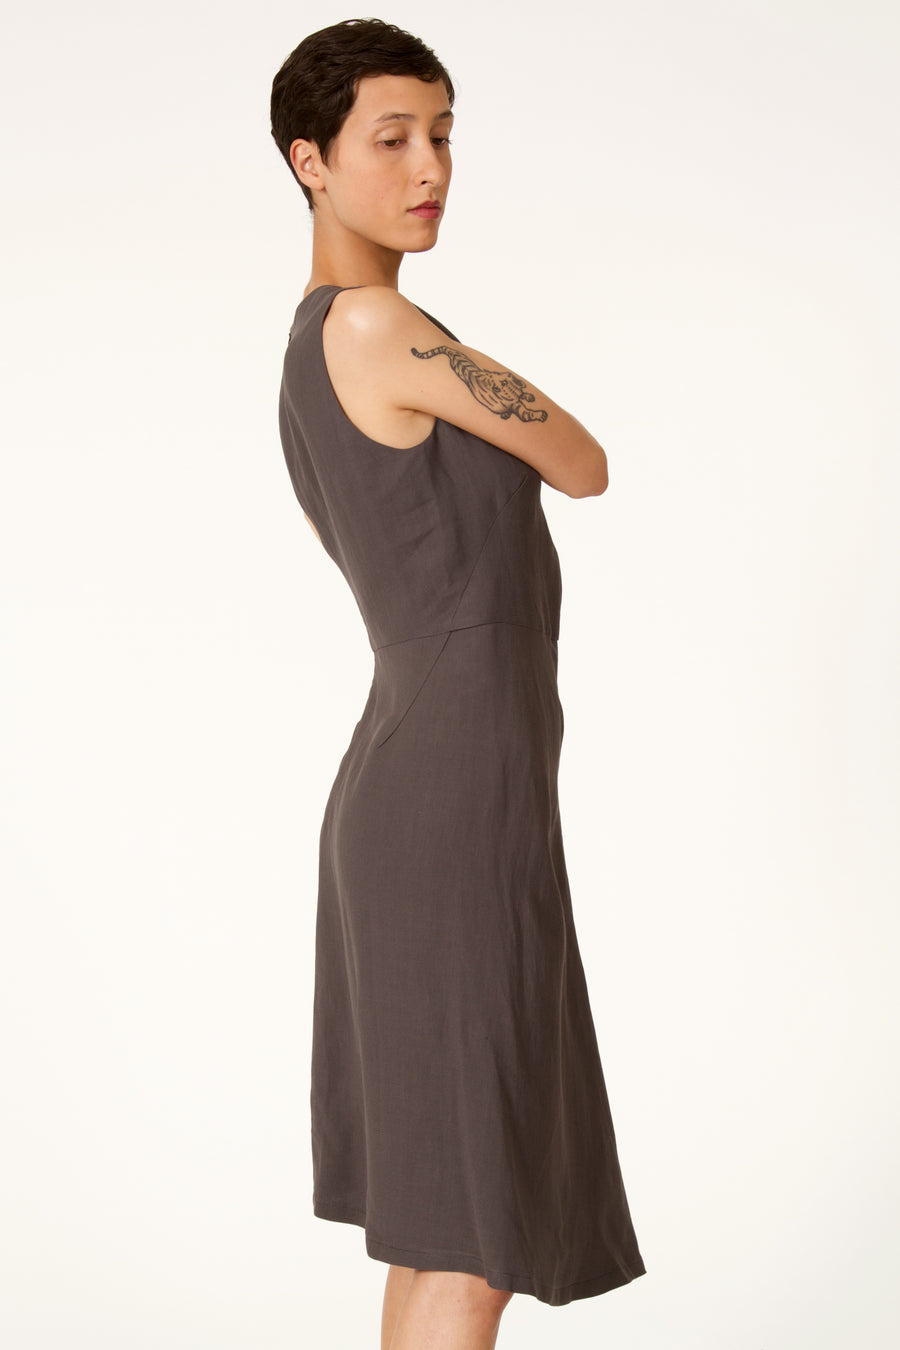 OISE Grey Dress